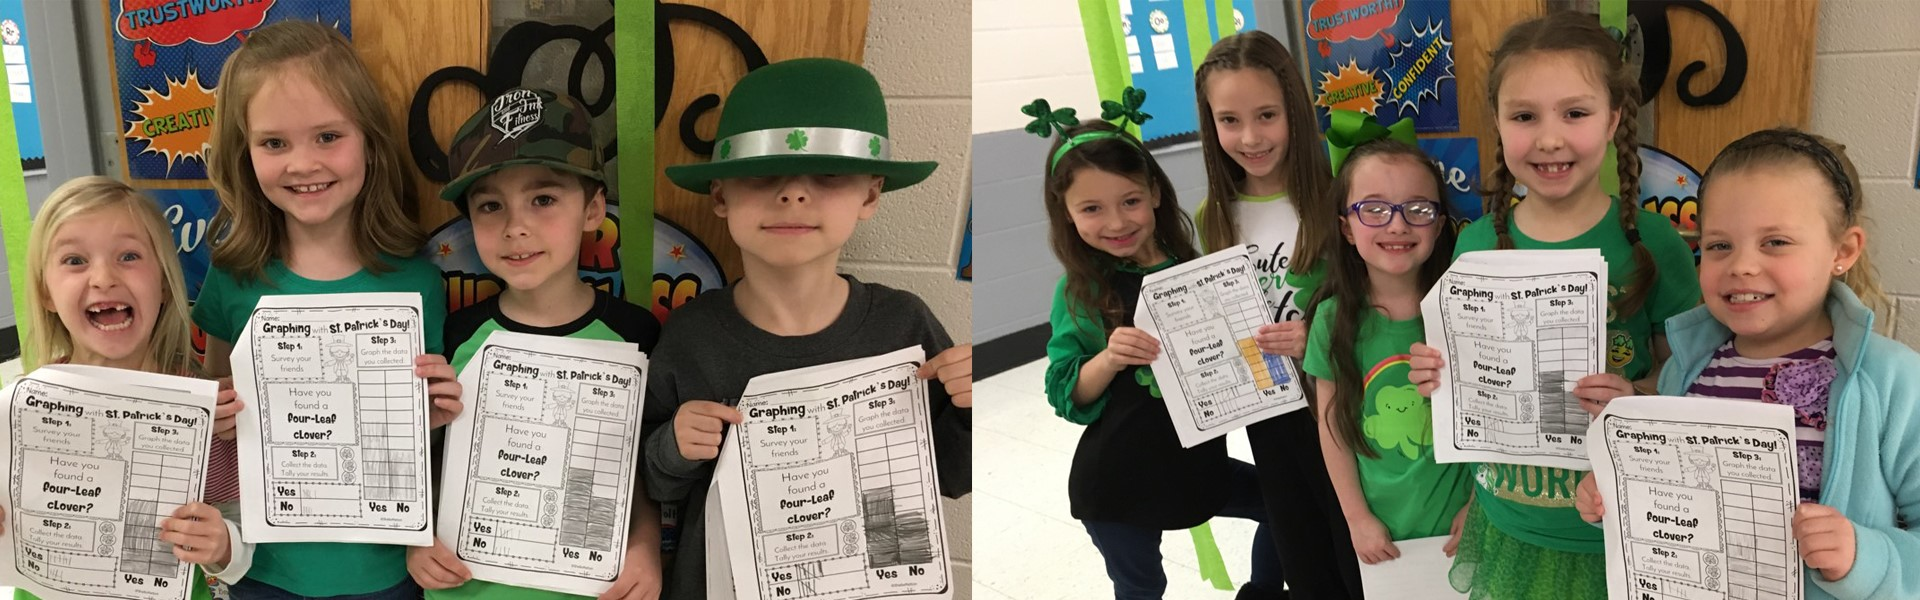 WCCP Lisa Sweet's St. Patrick's Day activity